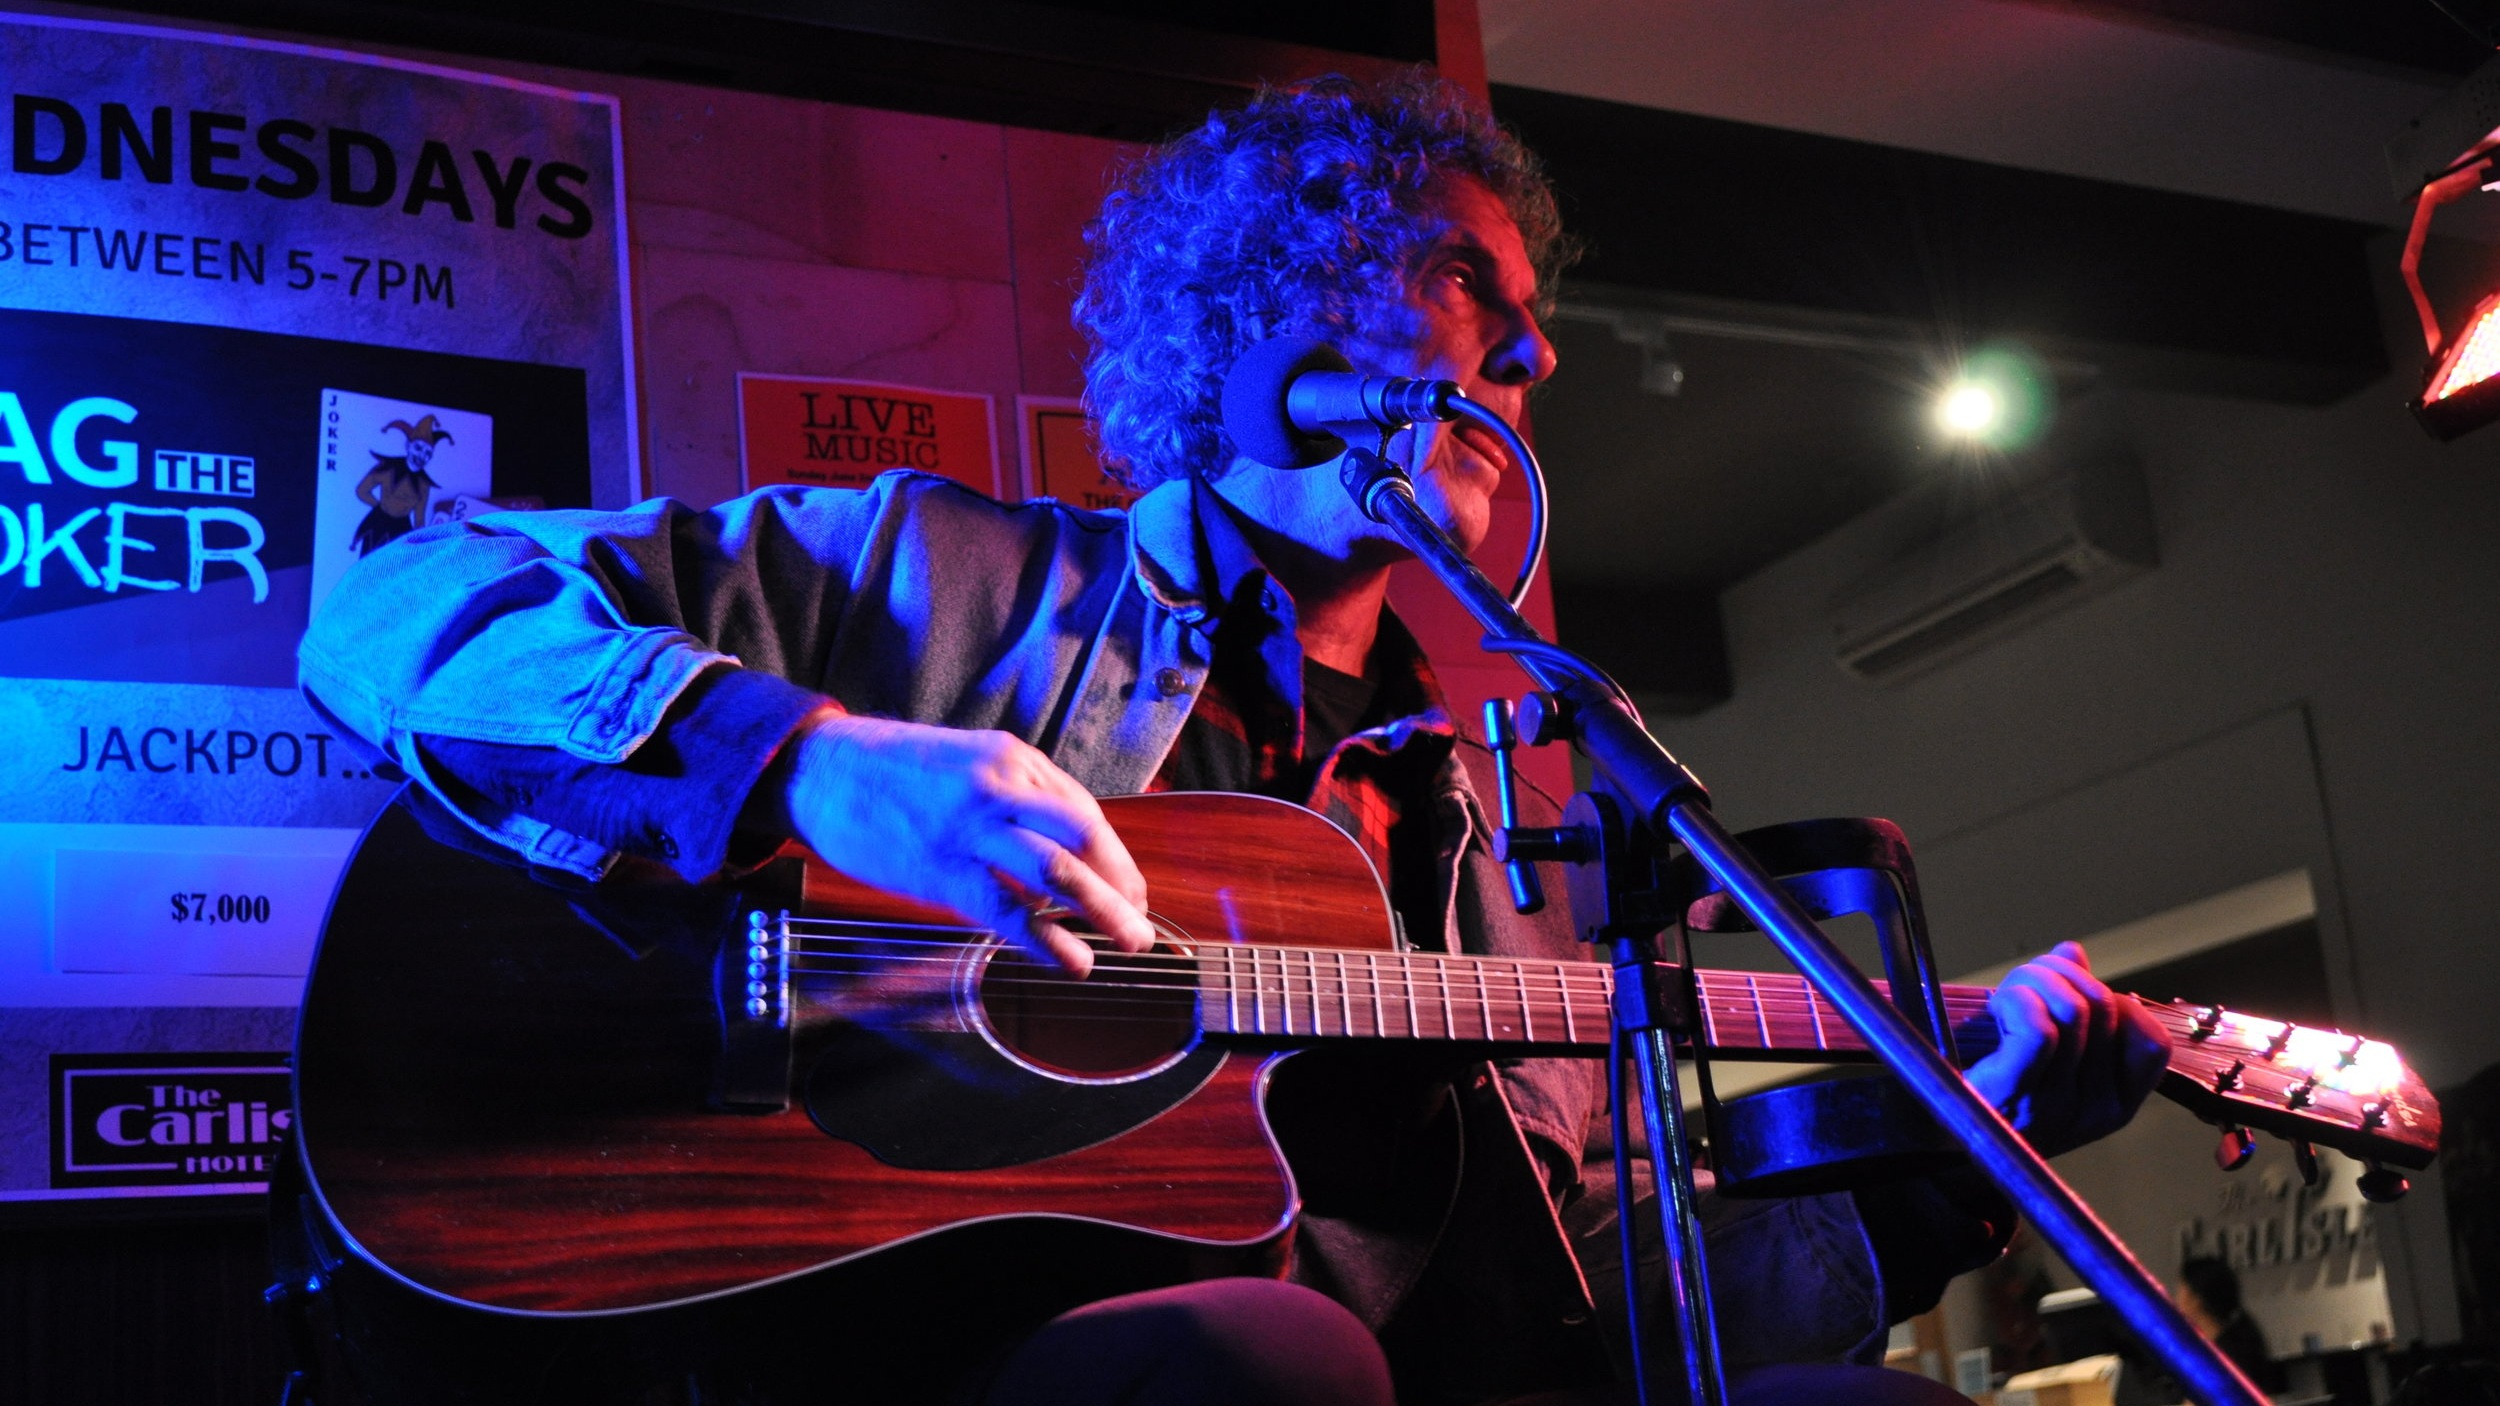 Carlisle Hotel Open Mic, Thursdays - 6.30-9.30pm. A lovely cozy lounge bar & friendly audience.